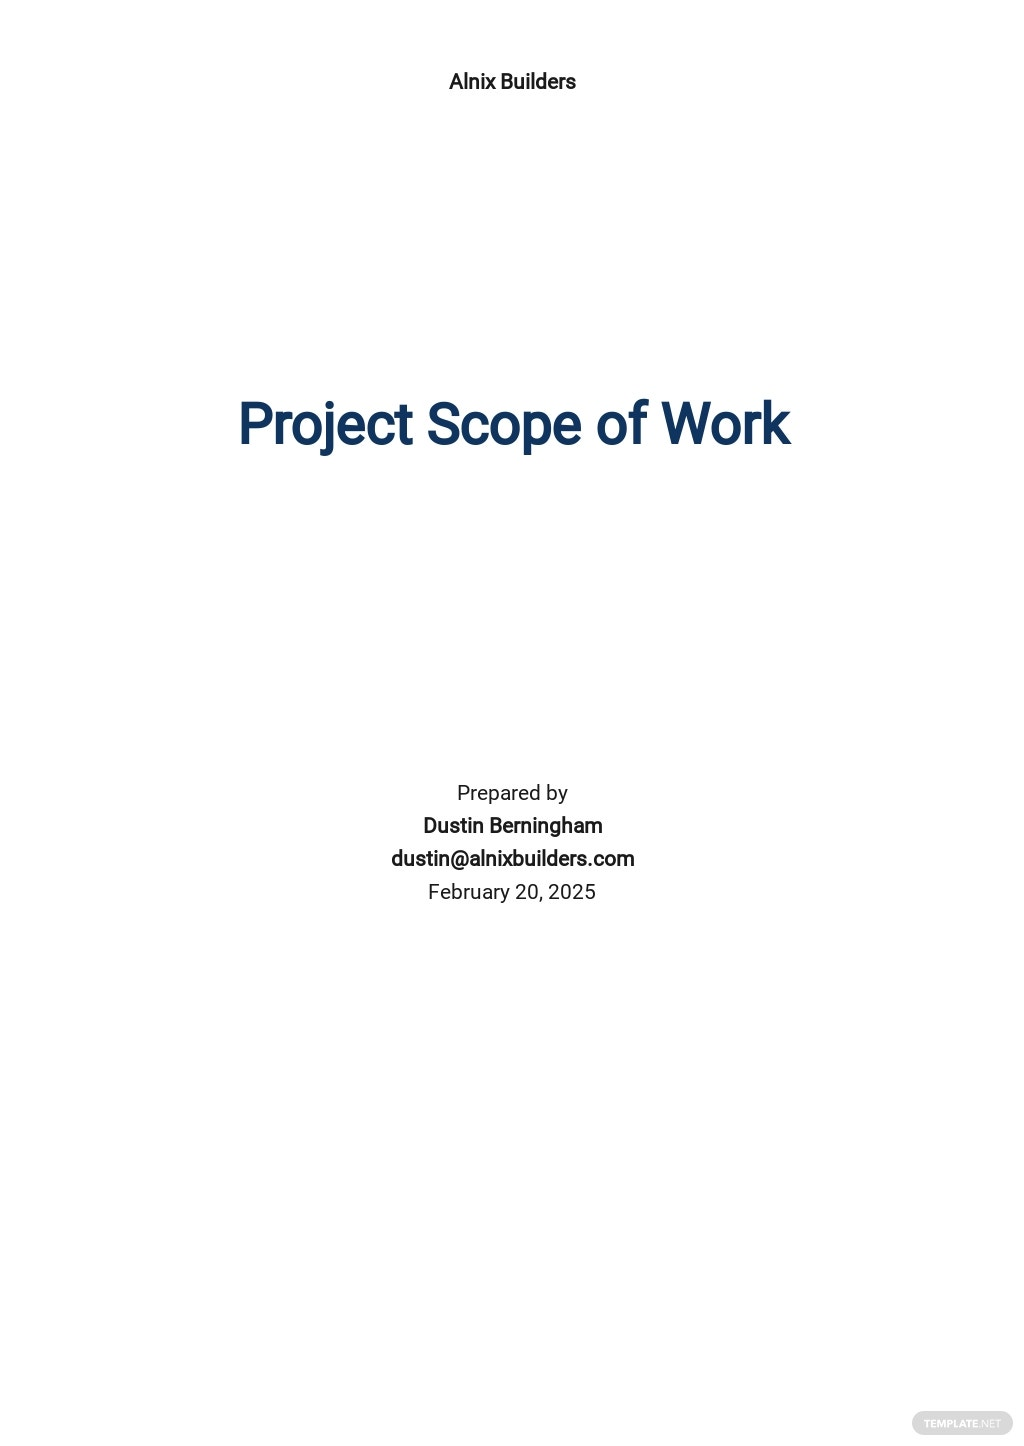 Project Scope of Work Template